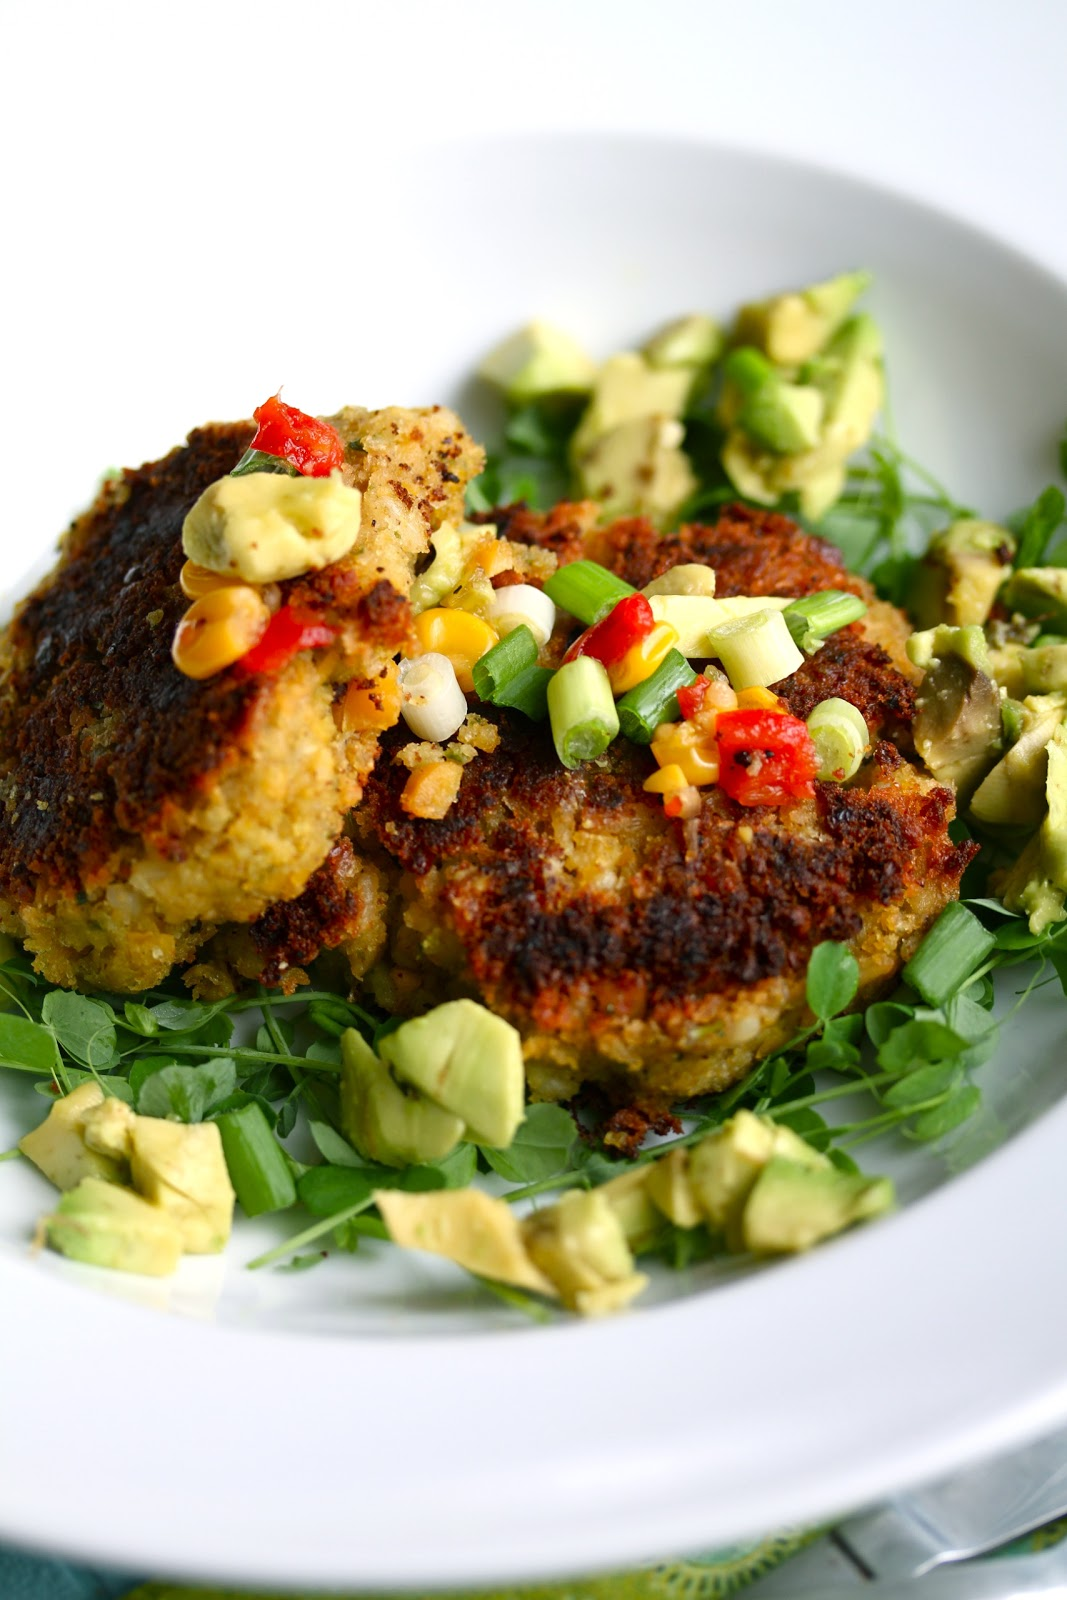 Vegan Chickpea Cakes With Mashed Avocado Recipes — Dishmaps